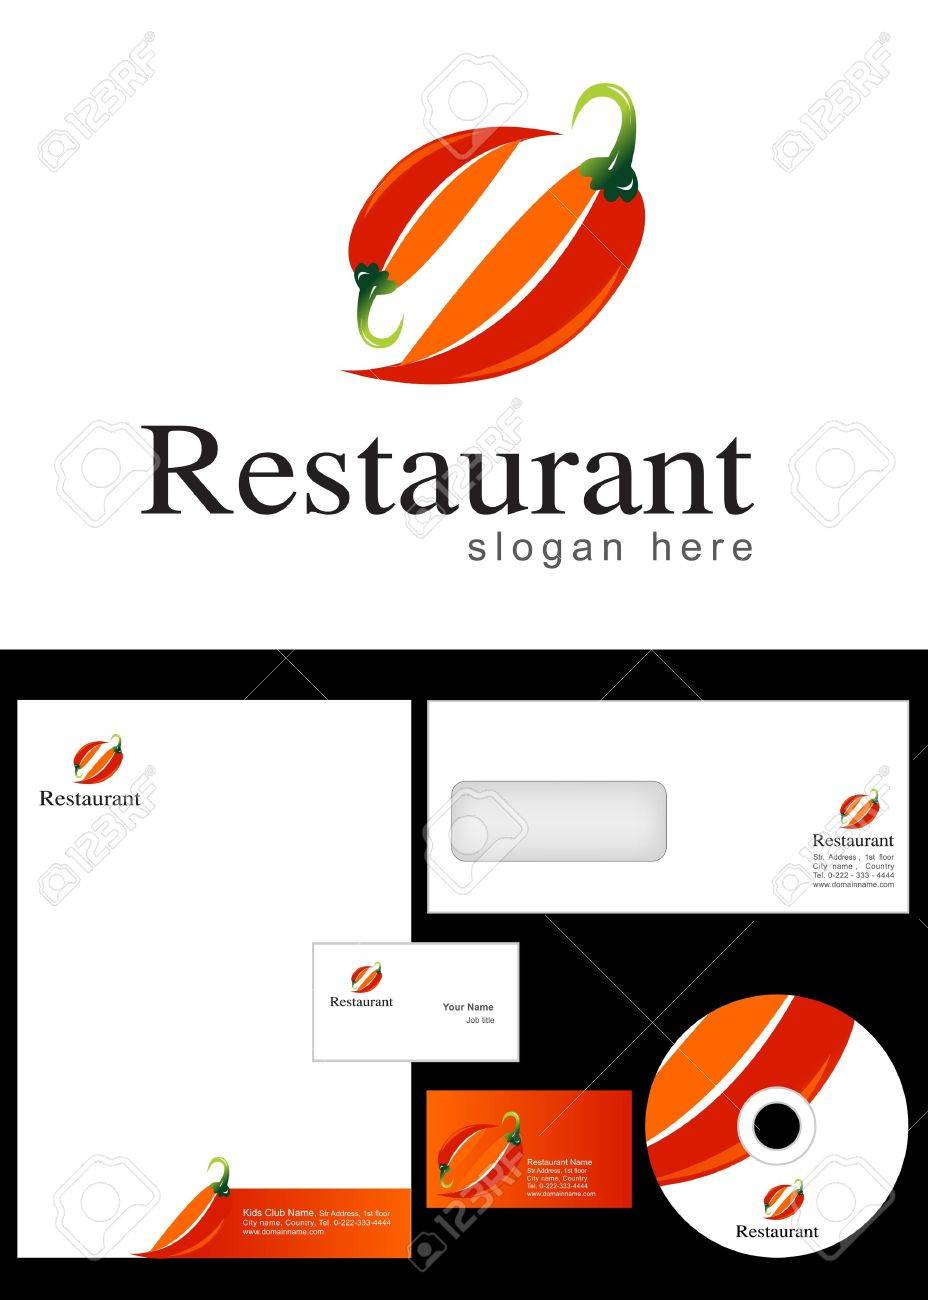 Restaurant Logo Design and corporate identity package including logo, letterhead, business card, envelope and cd label. Stock Vector - 12959773